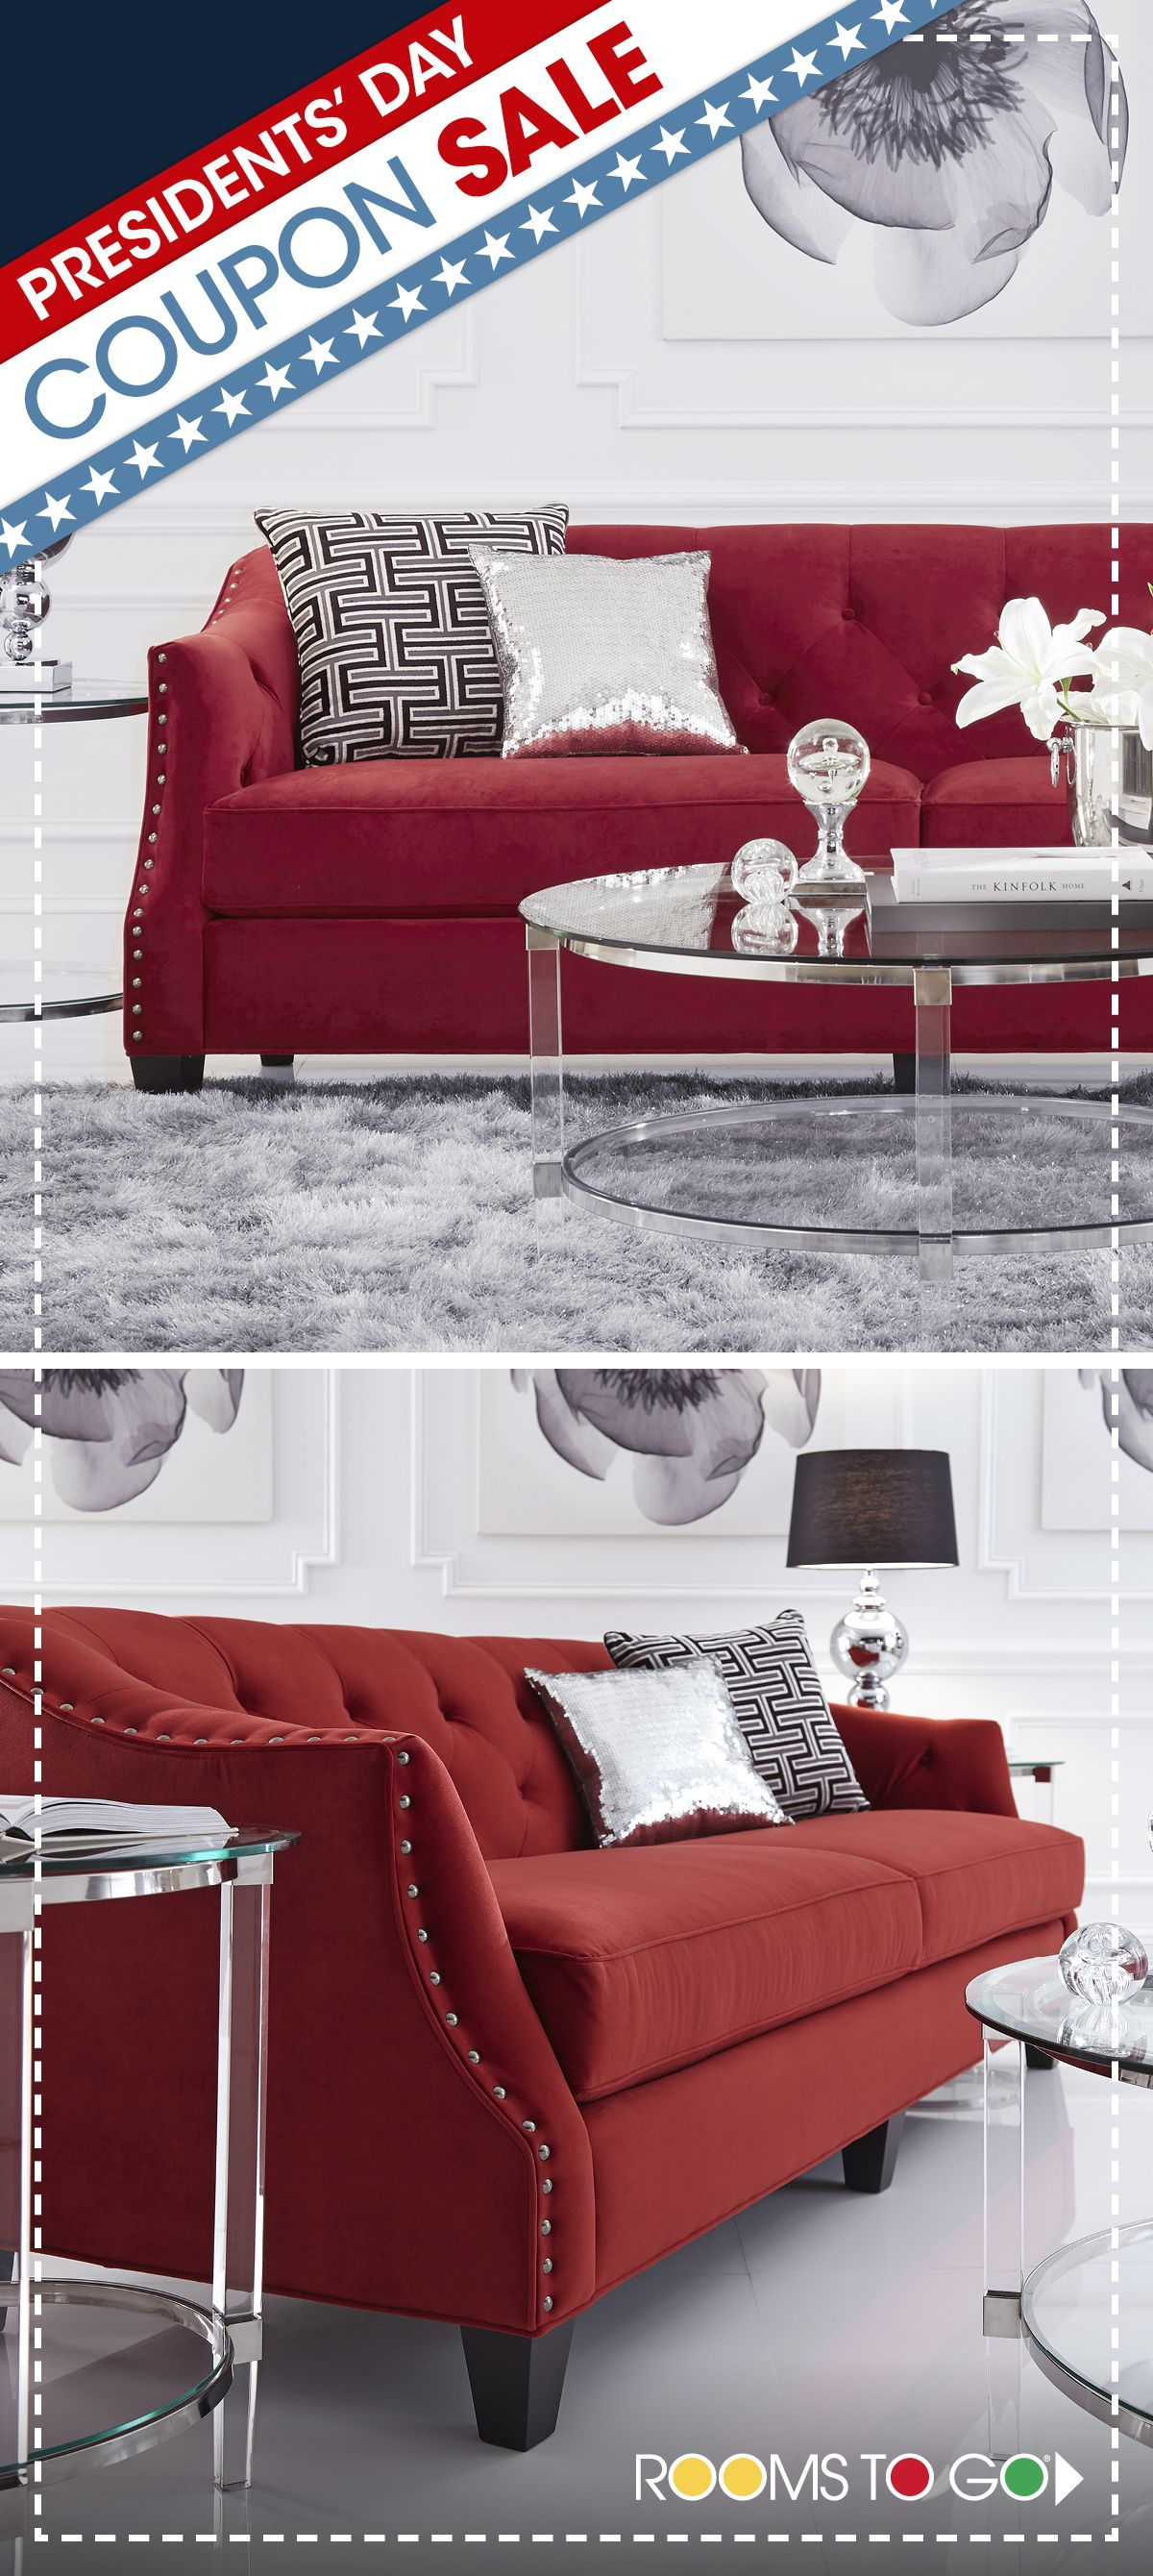 Beautiful Living Room Coupons available now. Make your